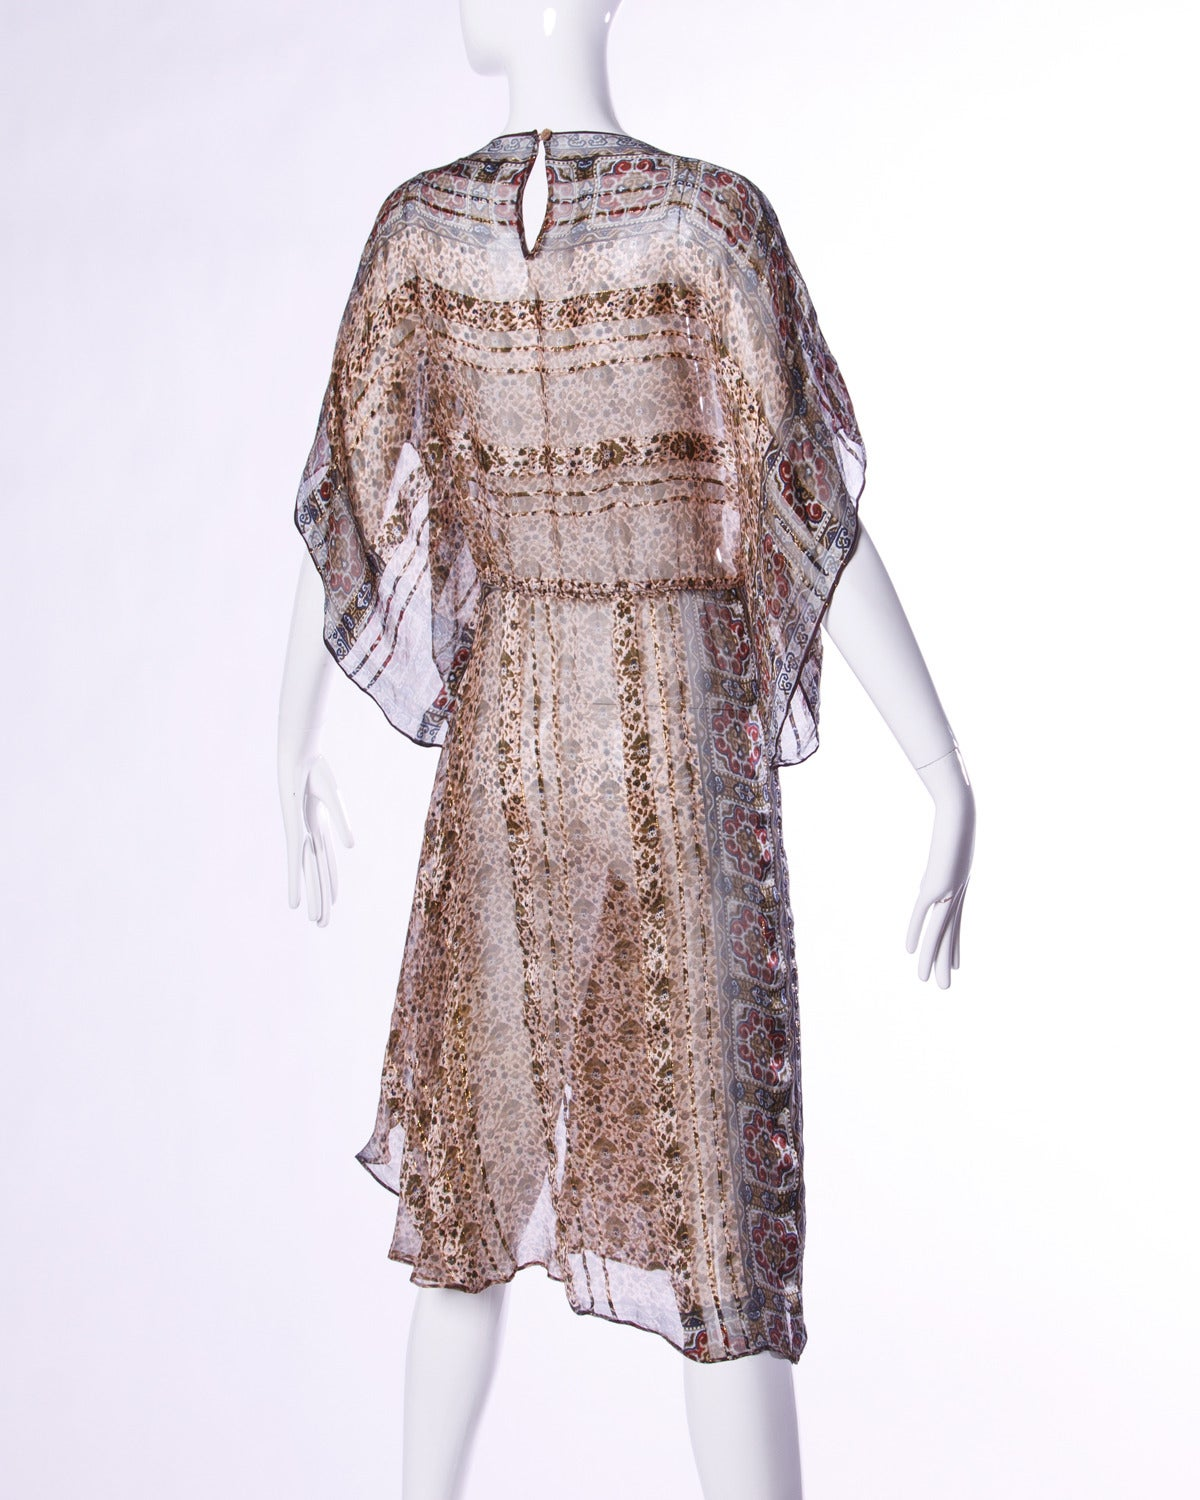 Gorgeous sheer silk chiffon dress with an Indian-inspired print and batwing kimono sleeves. Creamy high quality silk fabric is just stunning in person!